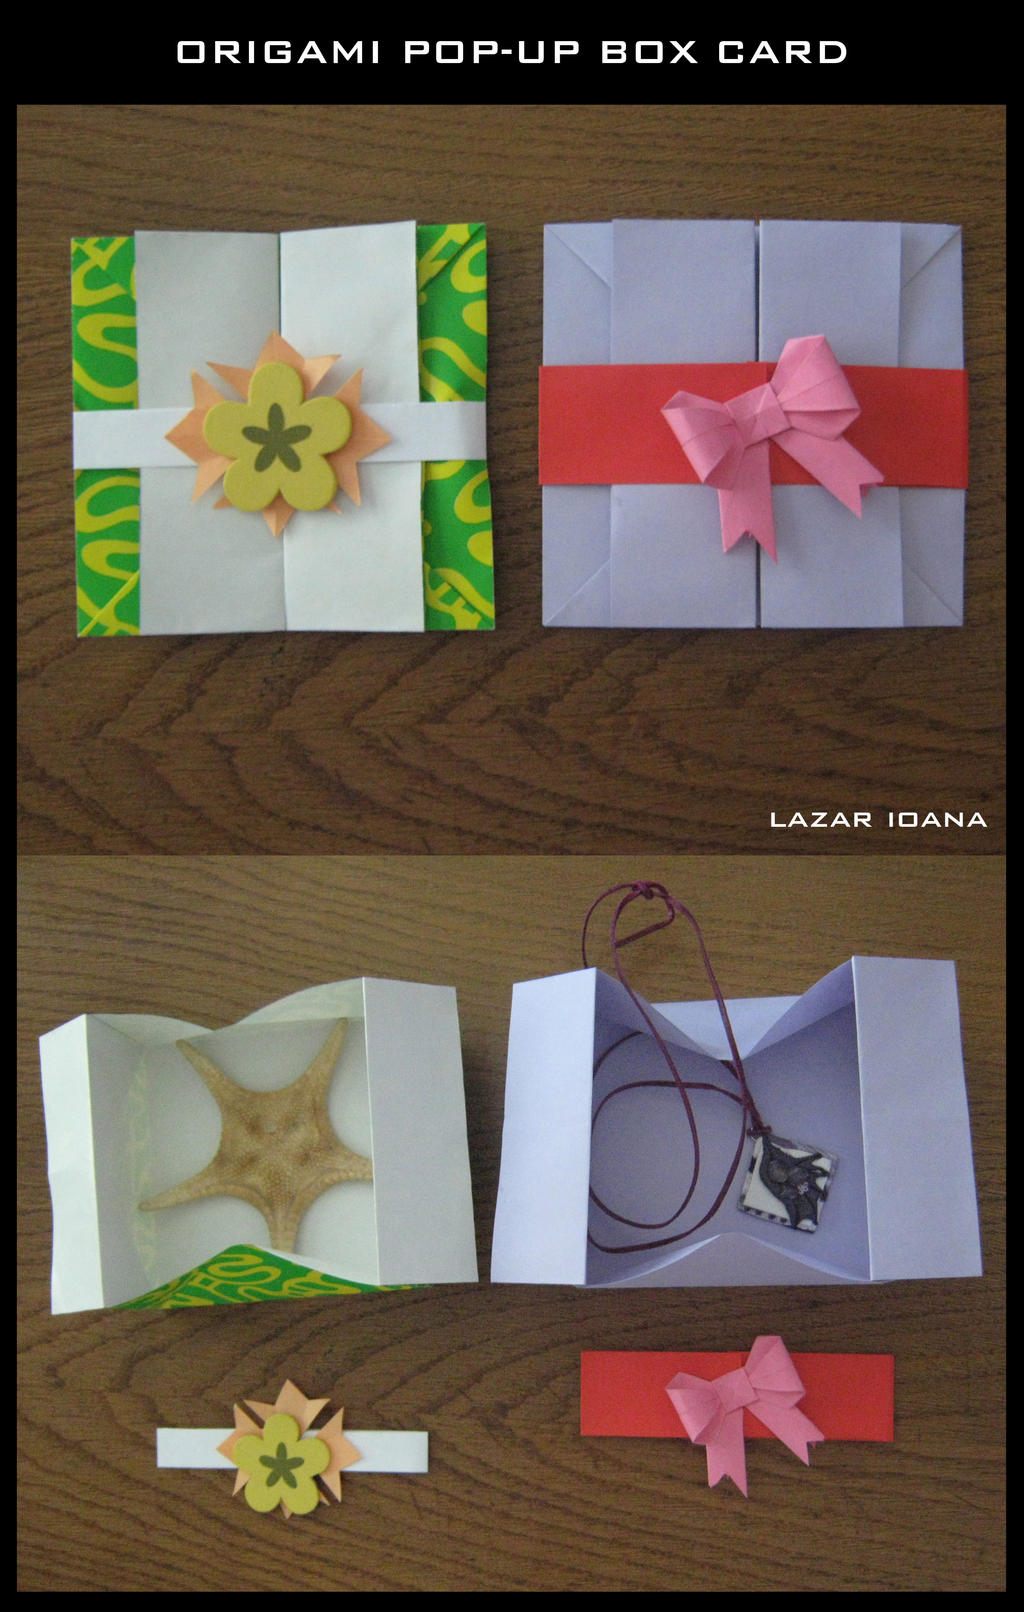 Origami Pop-up Box Card by DarkUmah on DeviantArt - photo#24